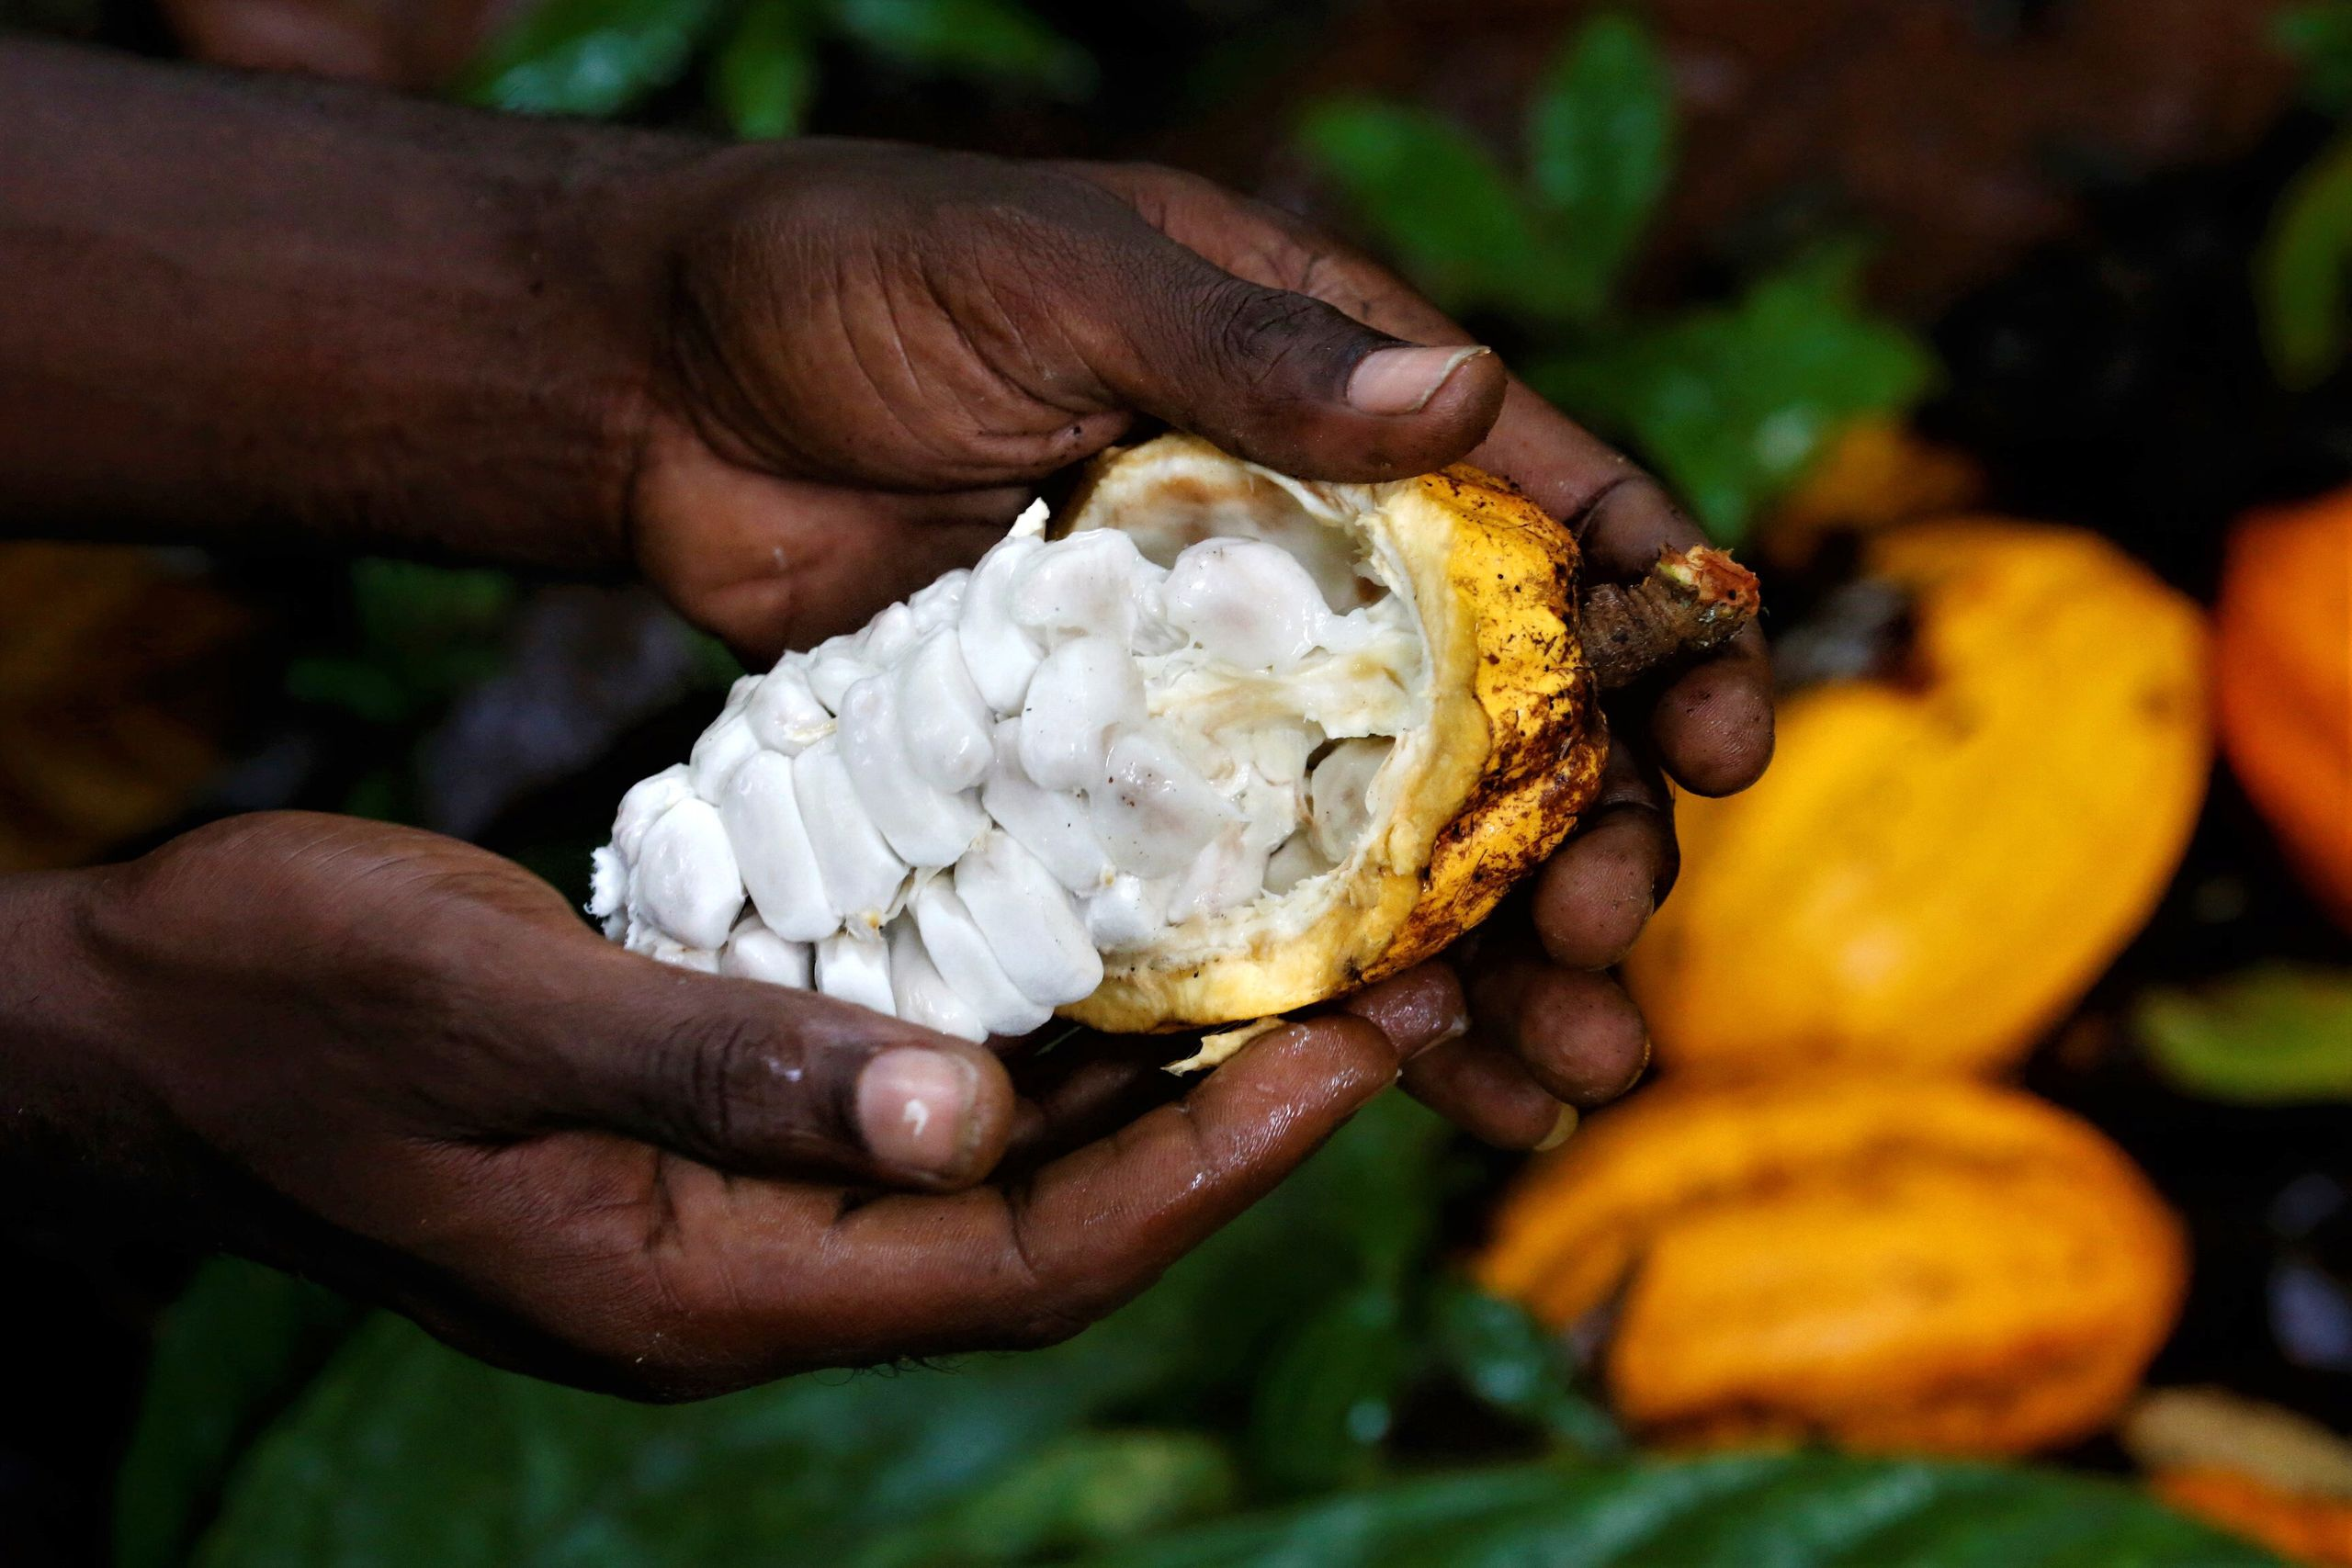 A worker shows the inside of a cocoa pod on a farm in Alepe, Ivory Coast.